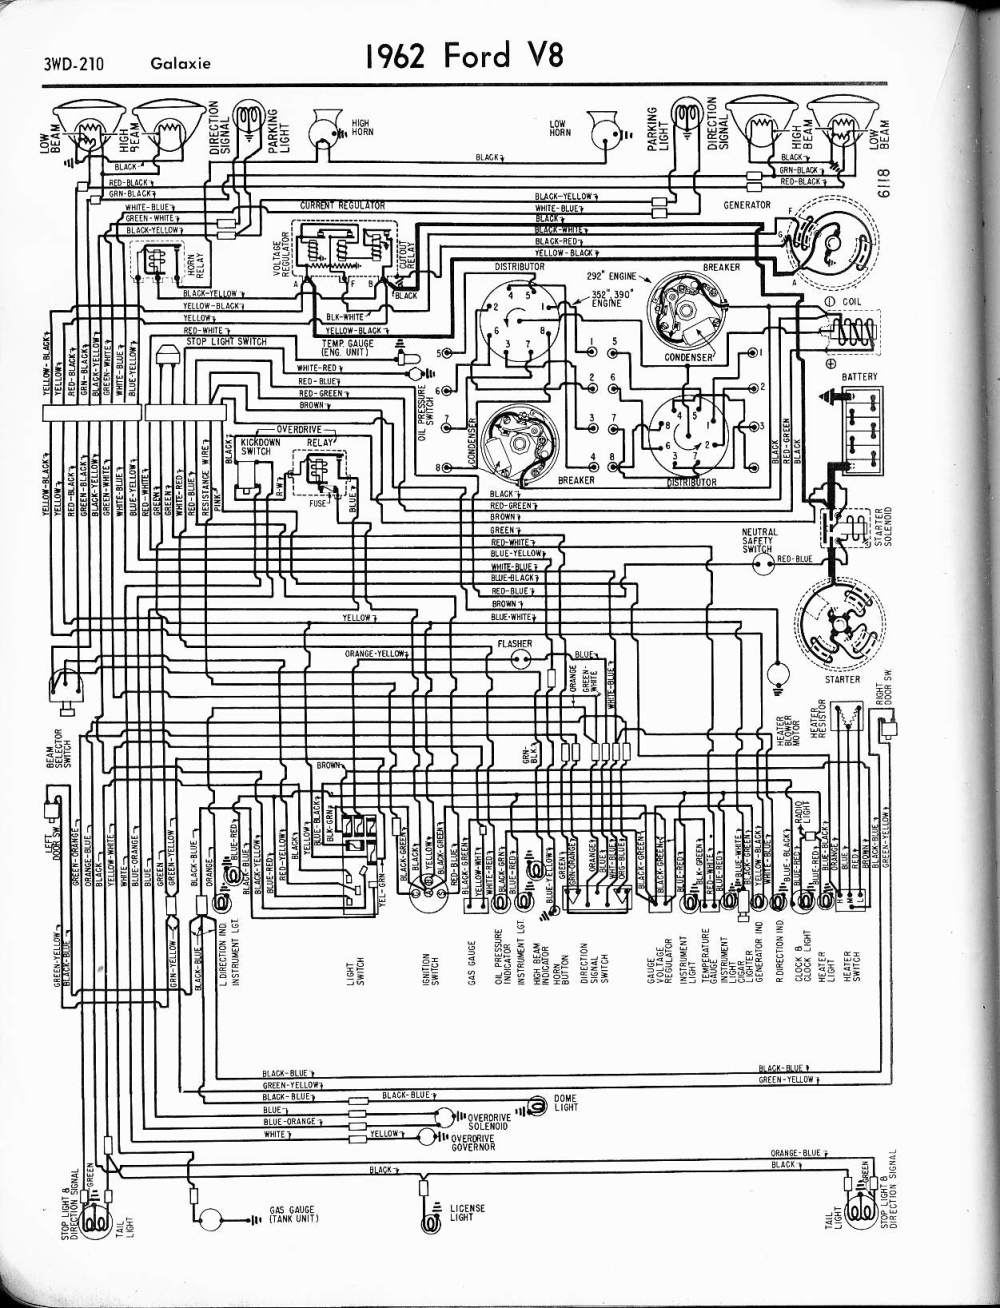 medium resolution of 62 ford generator wiring diagram just wiring diagram 62 ford generator wiring diagram wiring diagram tags